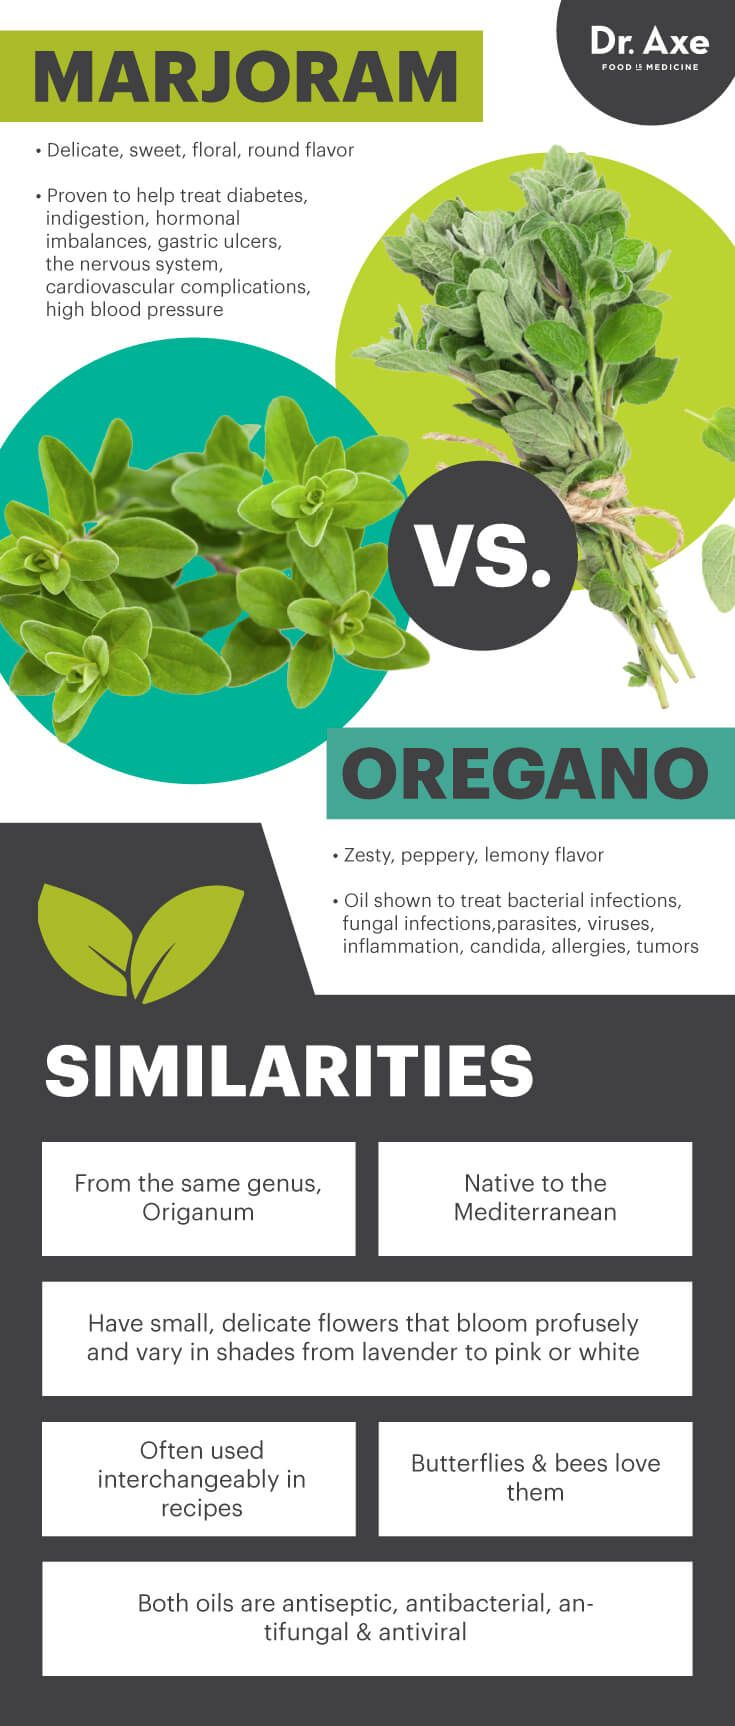 Marjoram vs. oregano - Dr. Axe http://www.draxe.com #health #holistic #natural